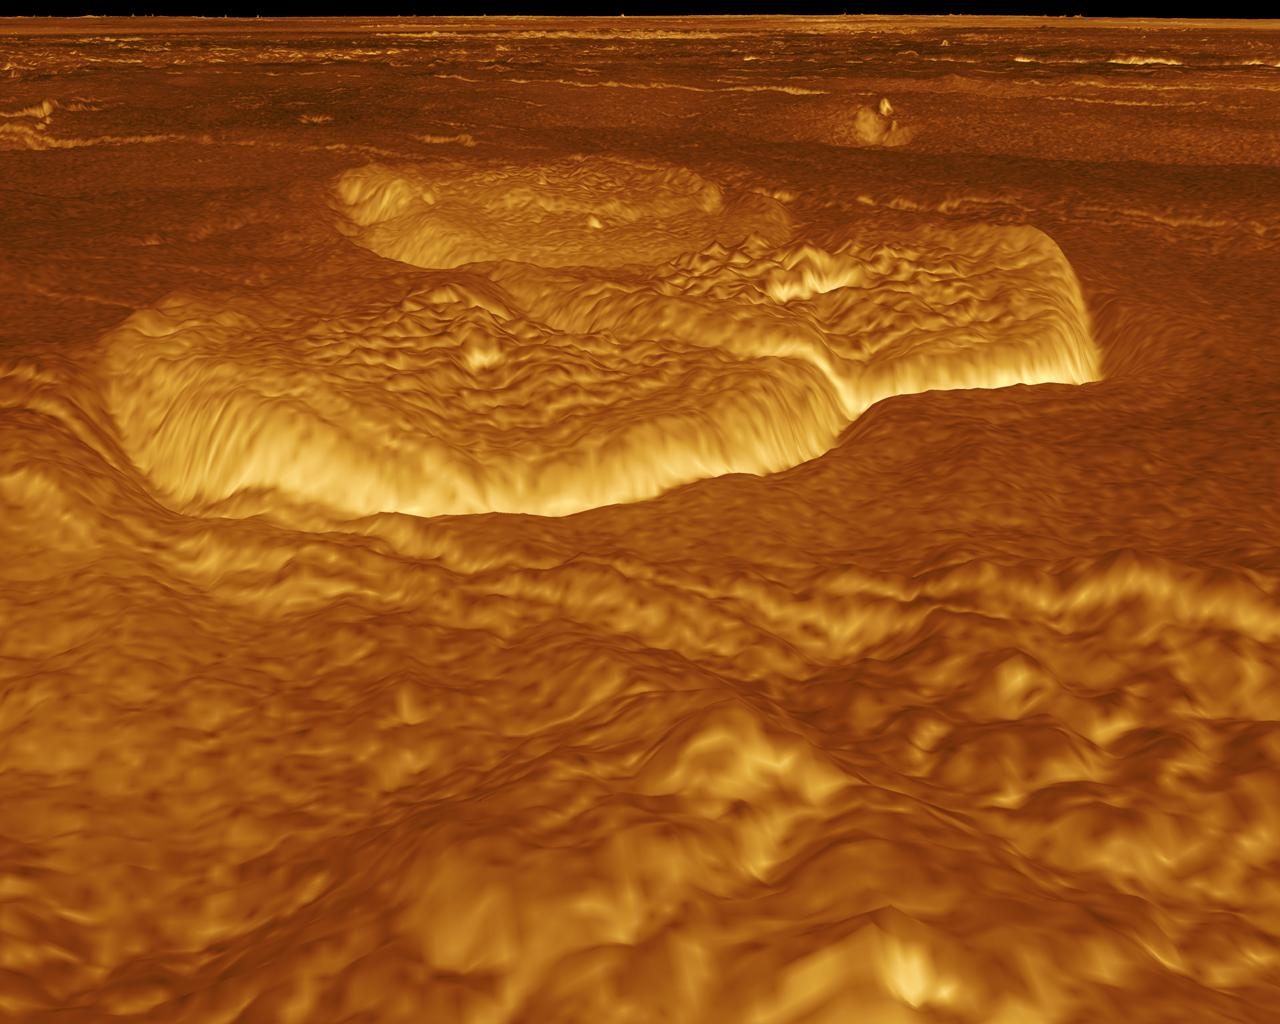 A portion of the eastern edge of Alpha Regio is displayed in this three-dimensional perspective view of the surface of Venus from NASA's Magellan spacecraft.